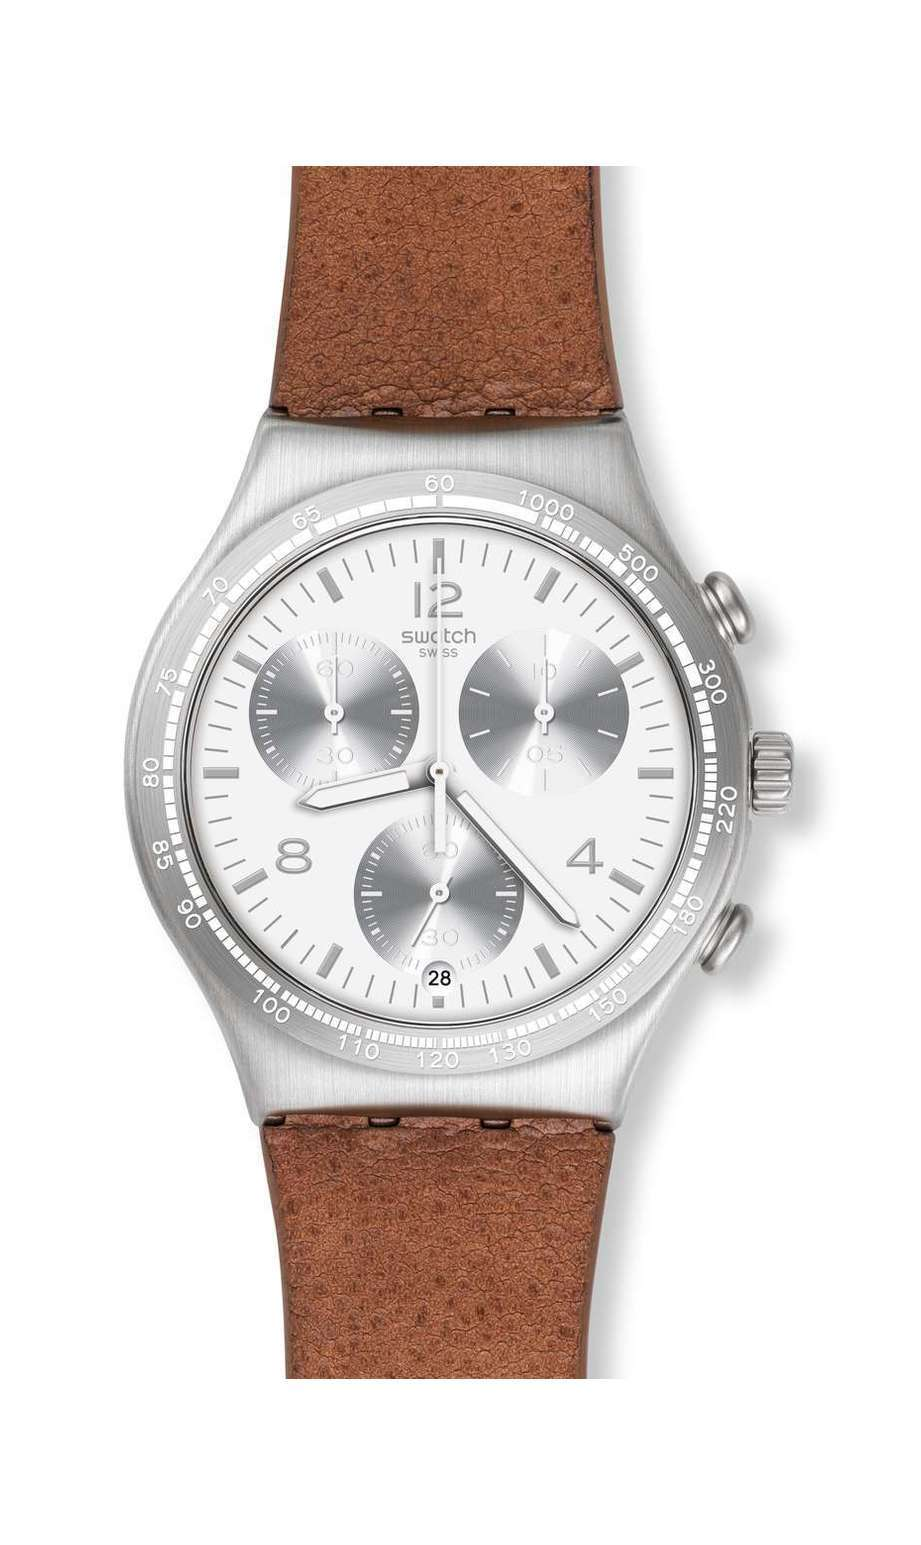 Swatch - BOTILLON - 1